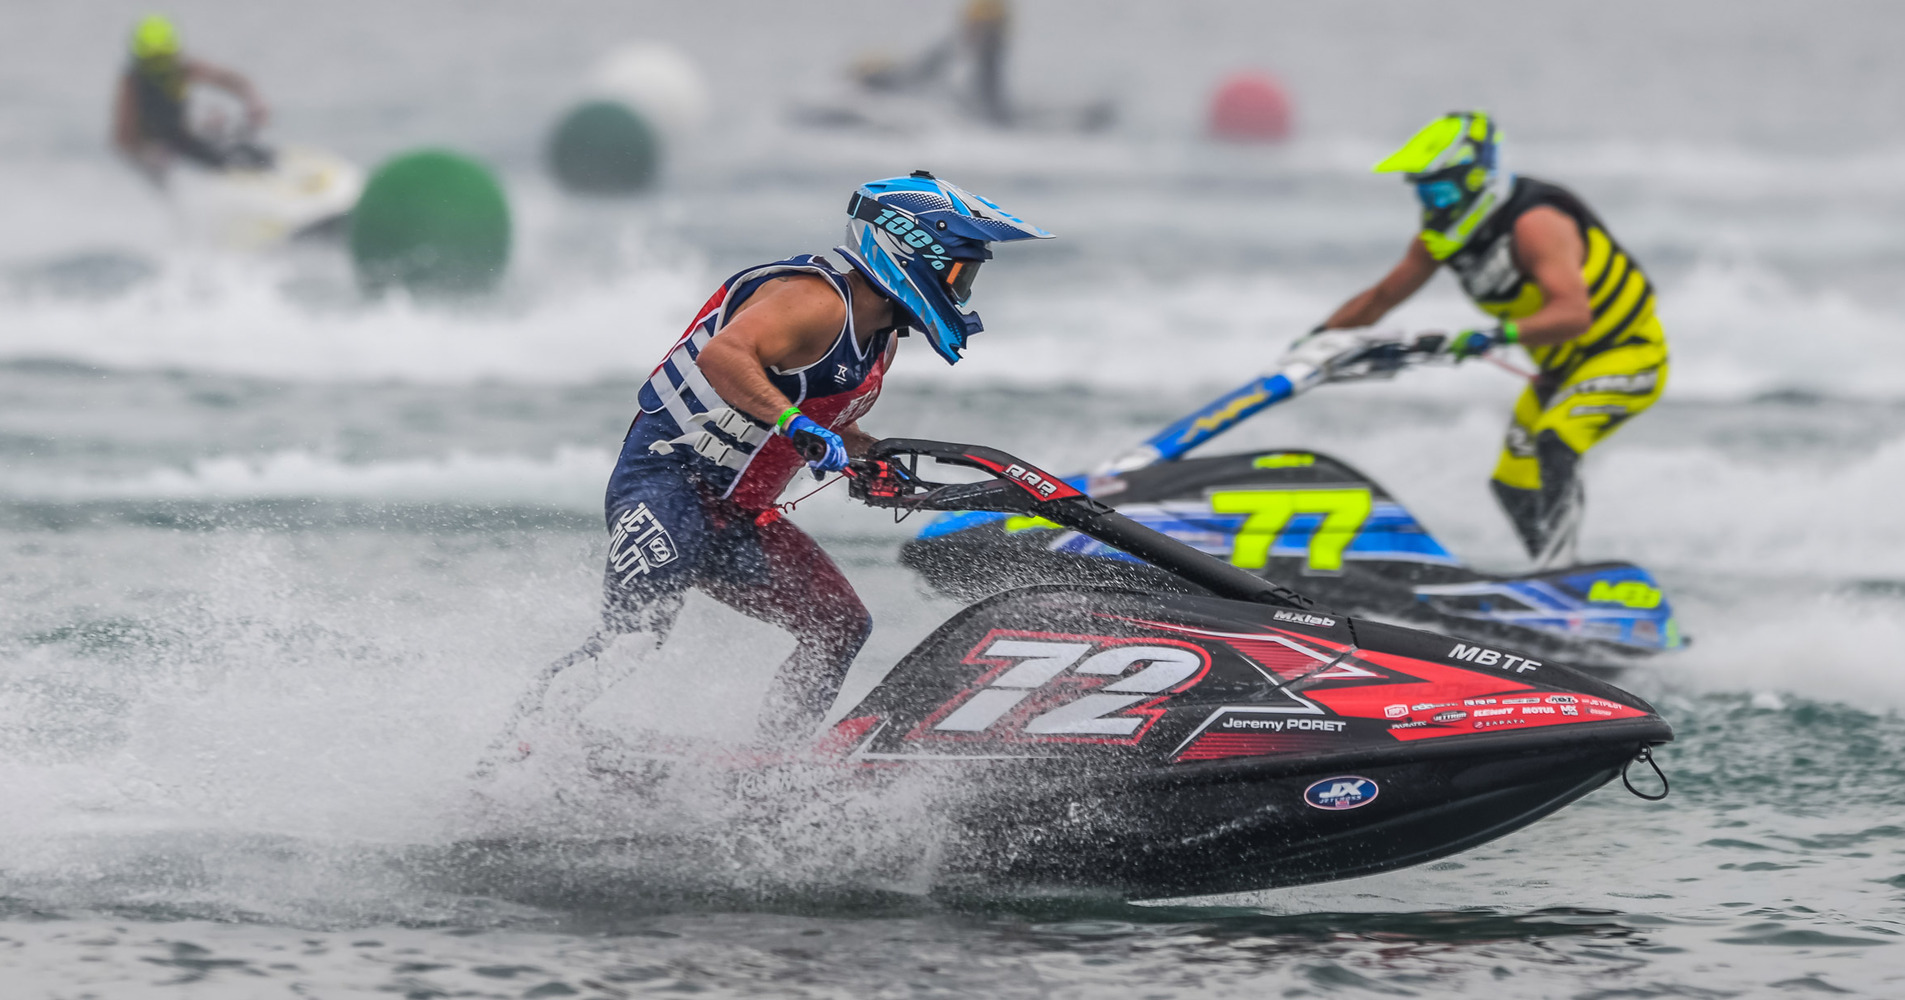 Jeremy Poret's domination with a perfect race week end at round 1 La Seyne-sur-Mer, France